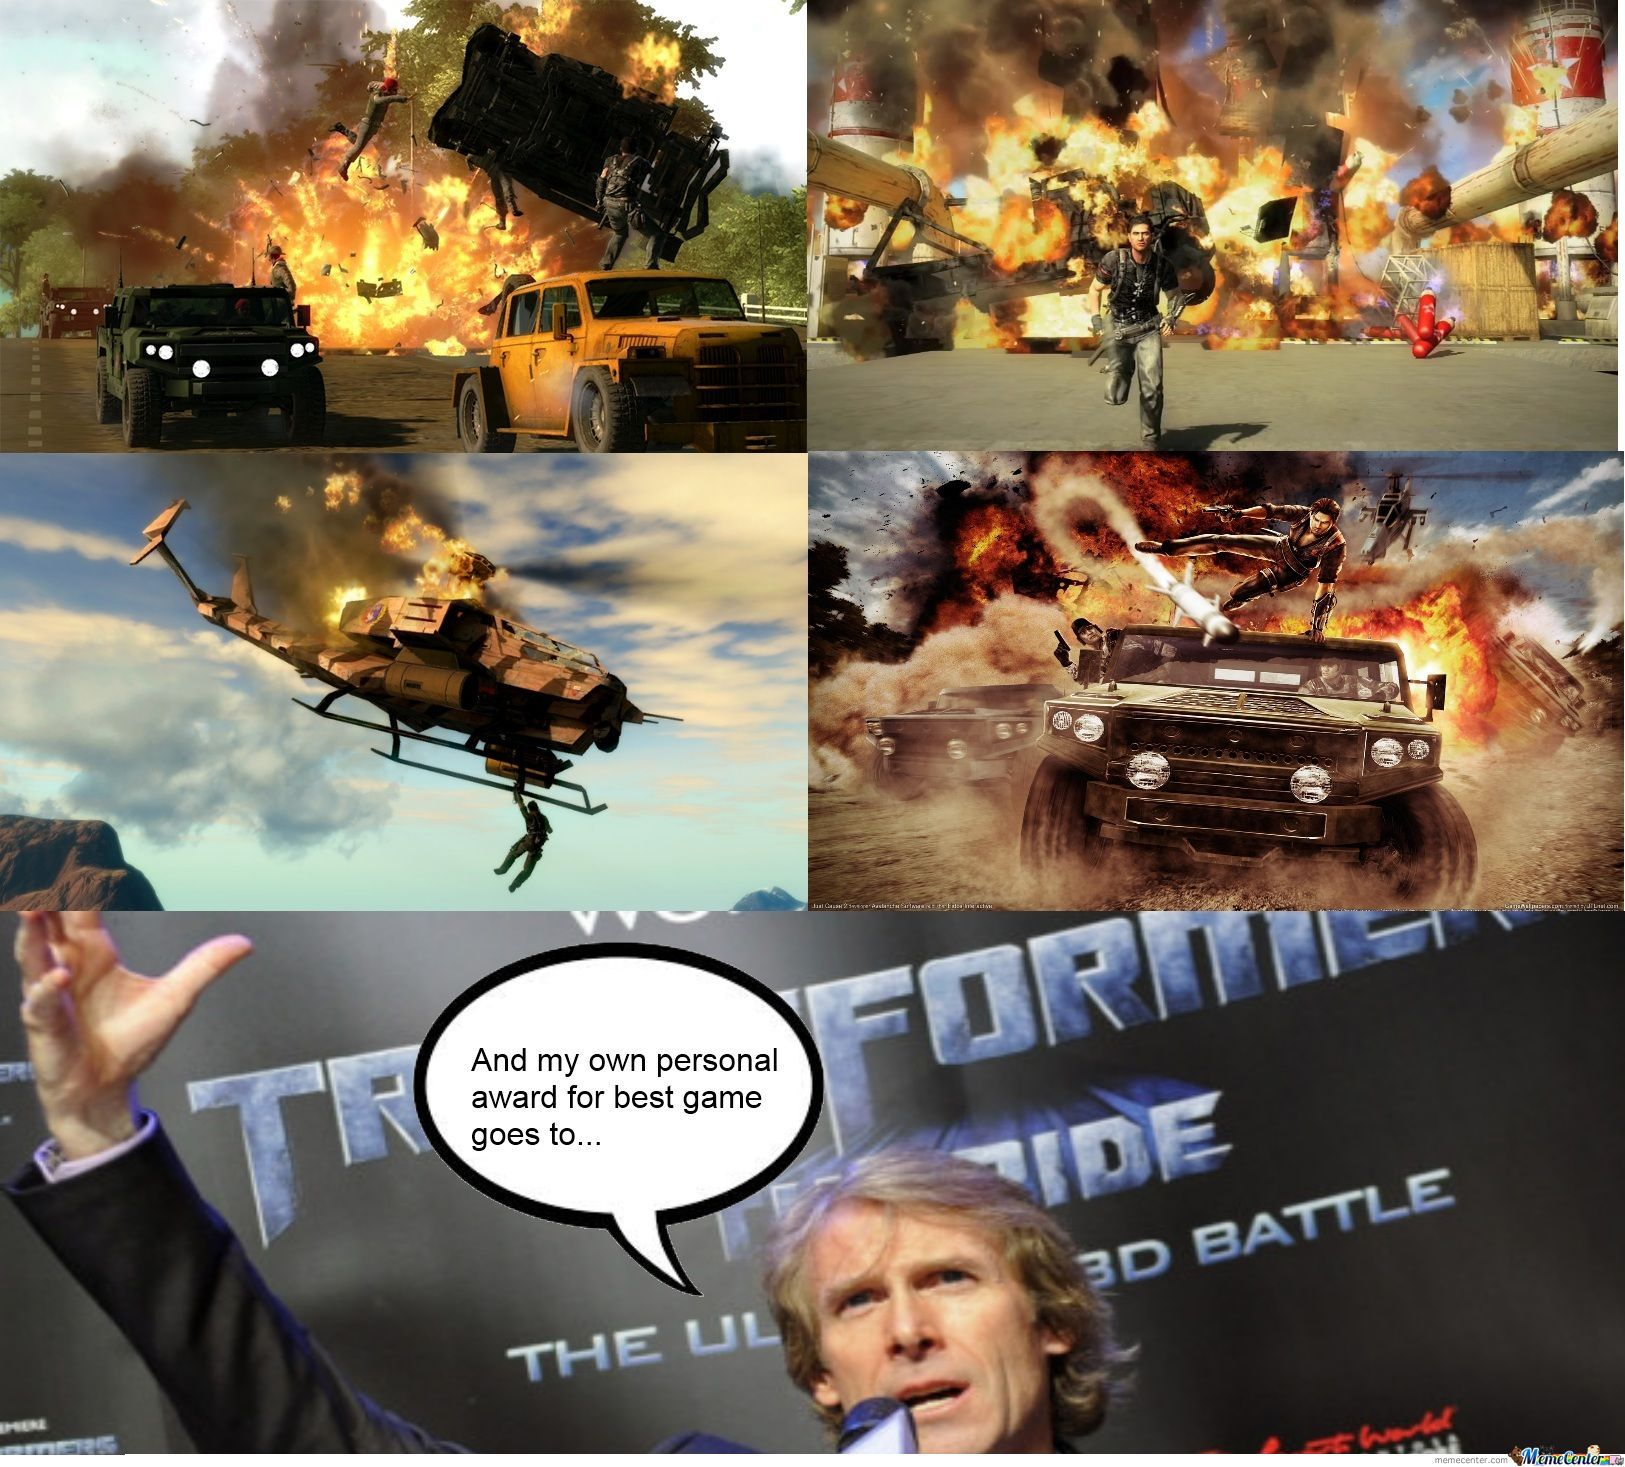 michael bay just cause he can_o_1229256 michael bay just cause he can! by arcticroflwolf meme center